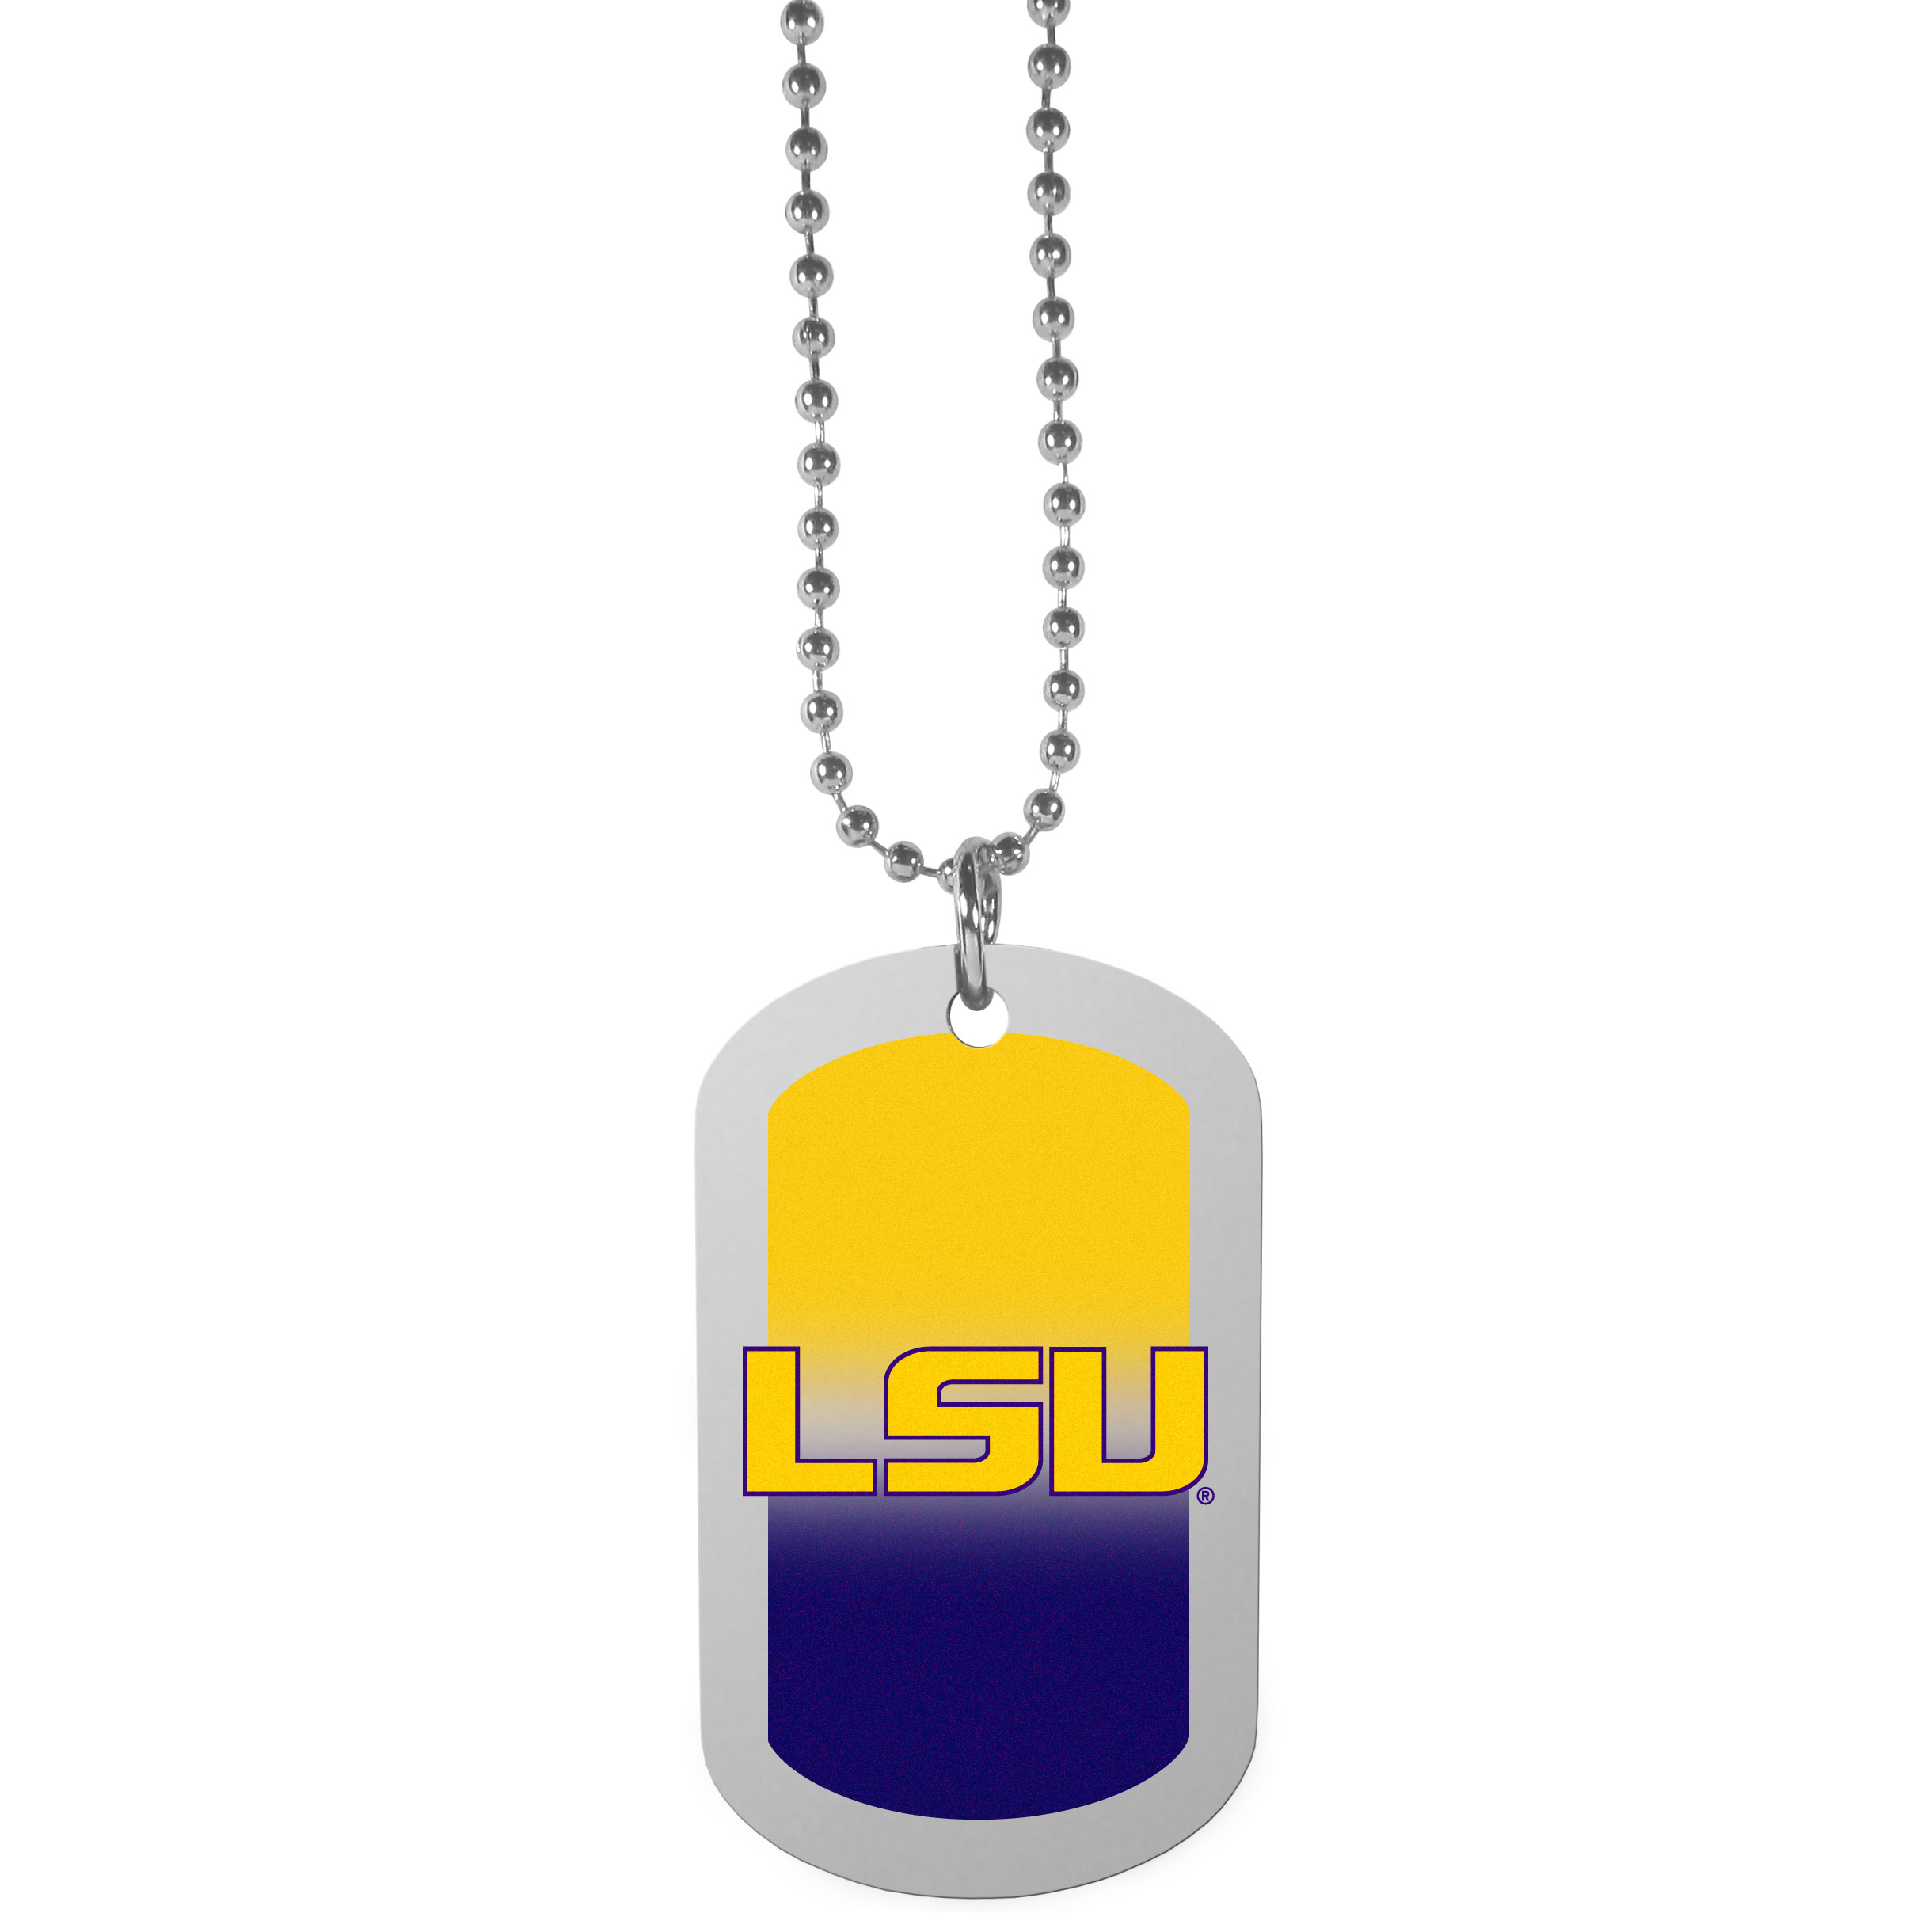 LSU Tigers Team Tag Necklace - Dog tag necklaces are a fashion statement that is here to stay. The sporty version of the classic tag features a gradient print in team colors featuring a full color team logo over a high polish tag to create a bold and sporty look. The tag comes on a 26 inch ball chain with a ball and joint clasp. Any LSU Tigers would be proud to wear this attractive fashion accessory.